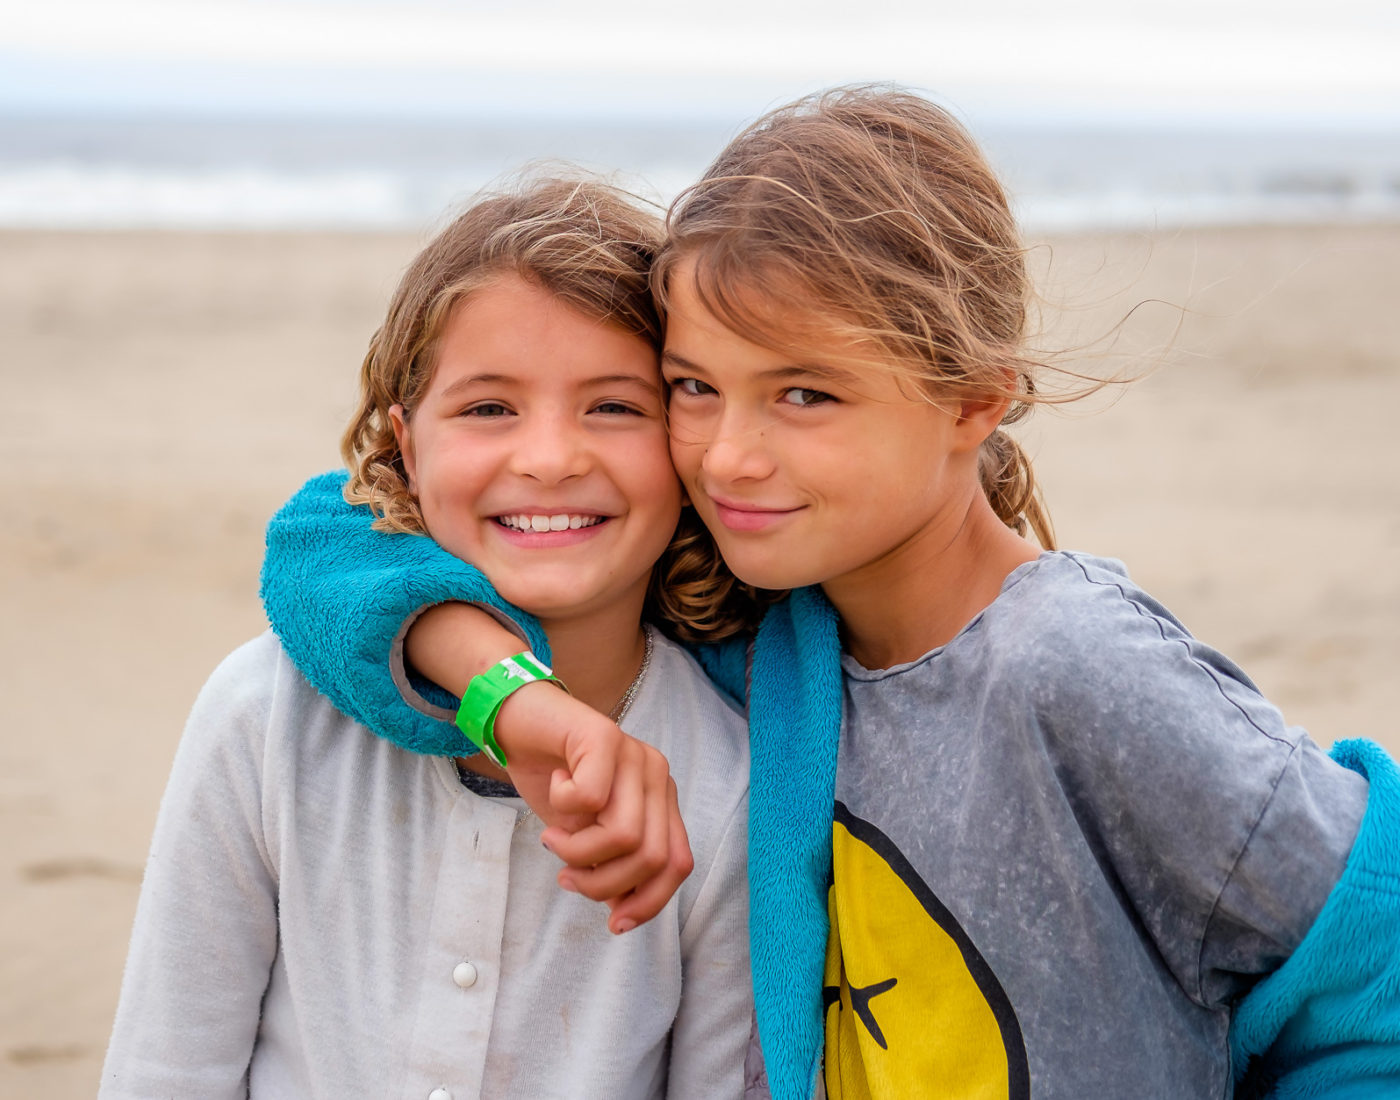 Portraits of the Jersey Shore Seaside Heights Point Pleasant 10-Year-Old Girls Mission Trip Good Samaritans Help Impoverished Children Uganda